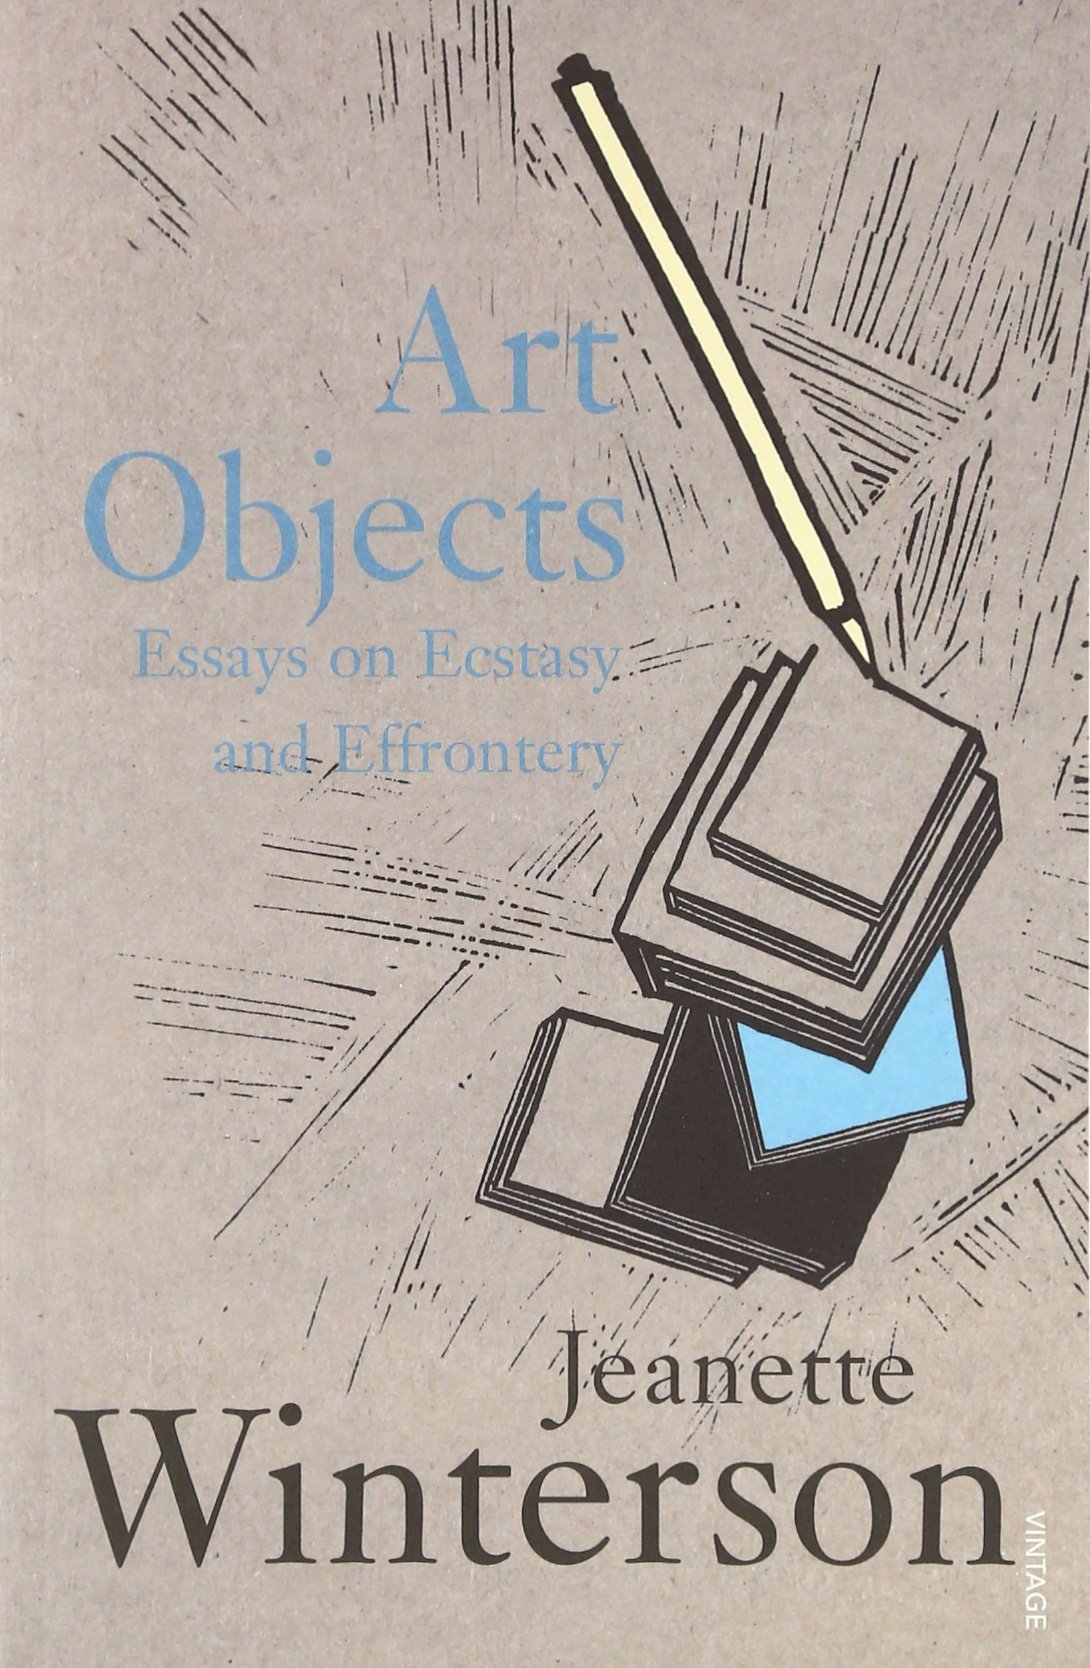 art objects essays on ecstasy and effrontery co uk art objects essays on ecstasy and effrontery co uk jeanette winterson 9780099590019 books